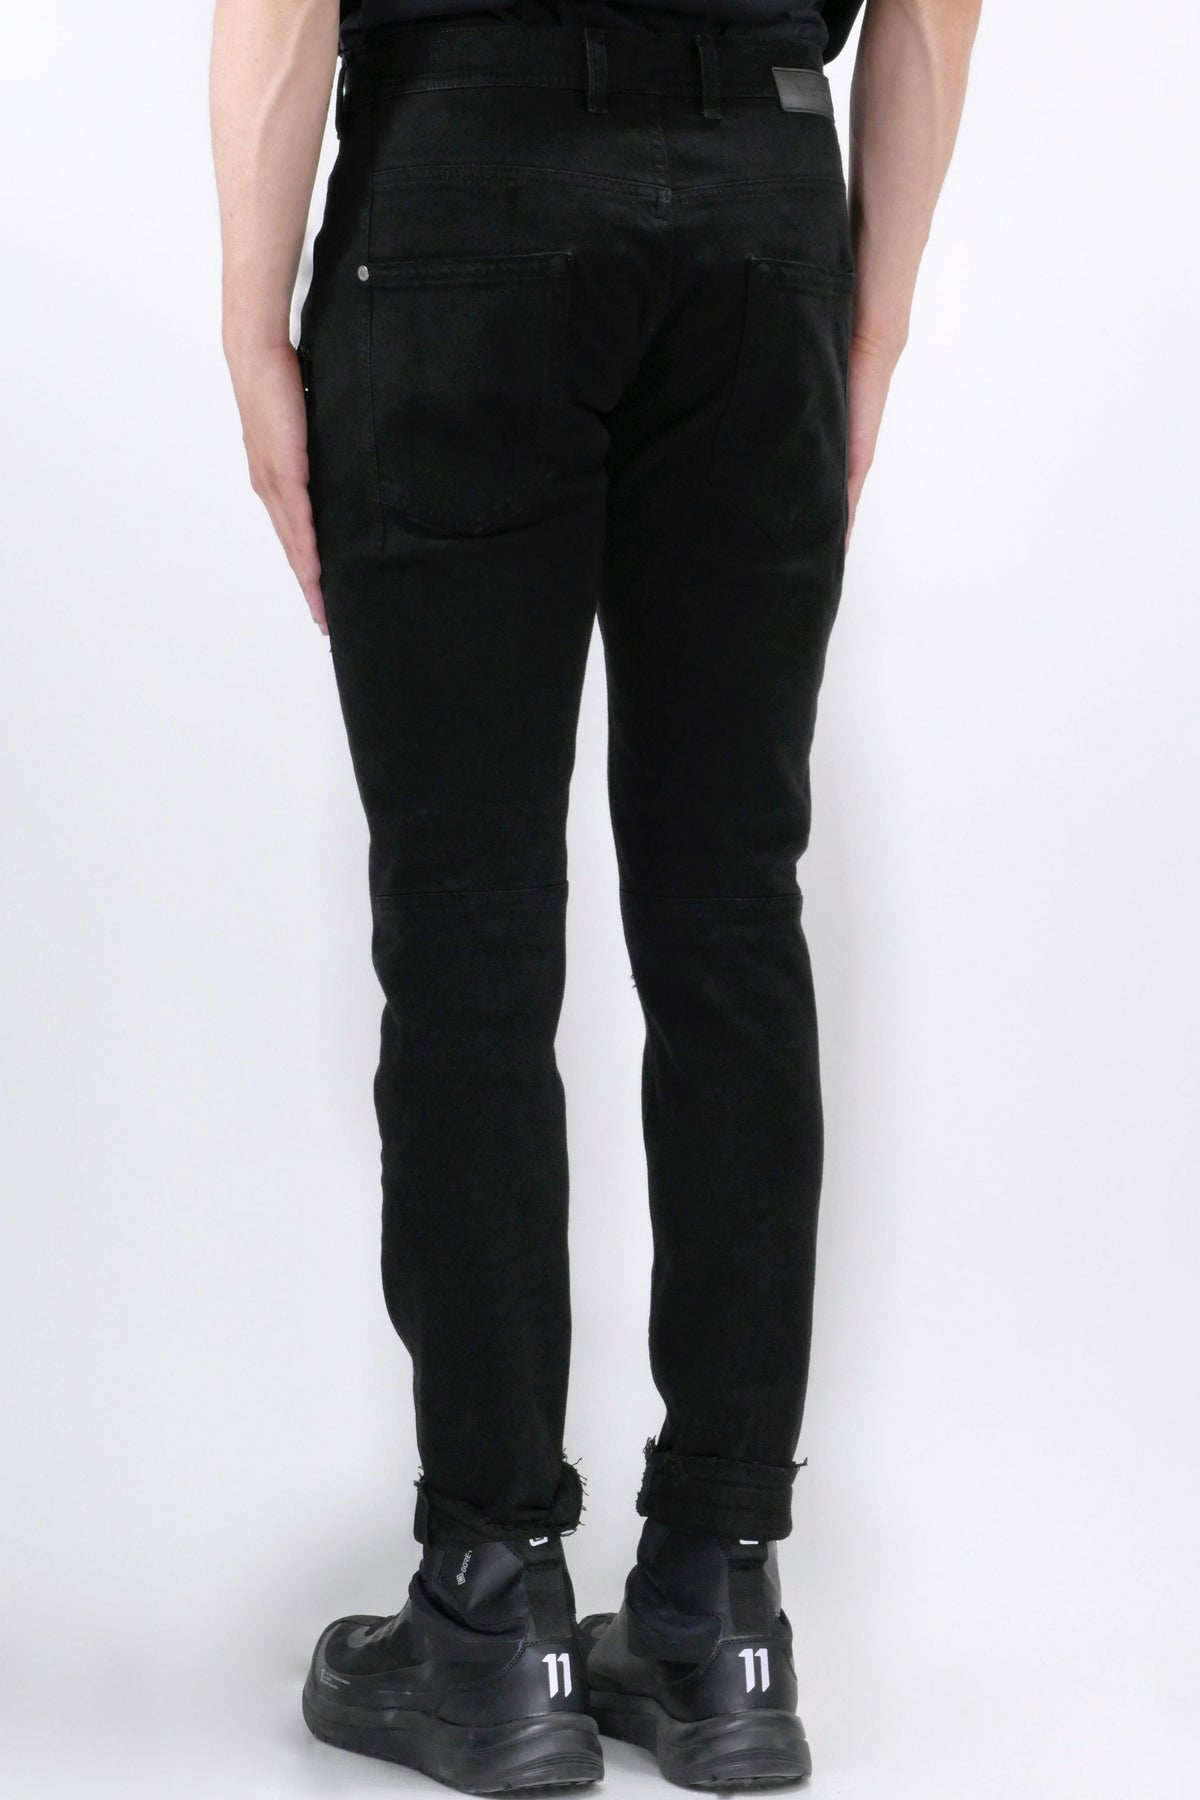 Neil Barrett Extreme Distressed Jeans Black